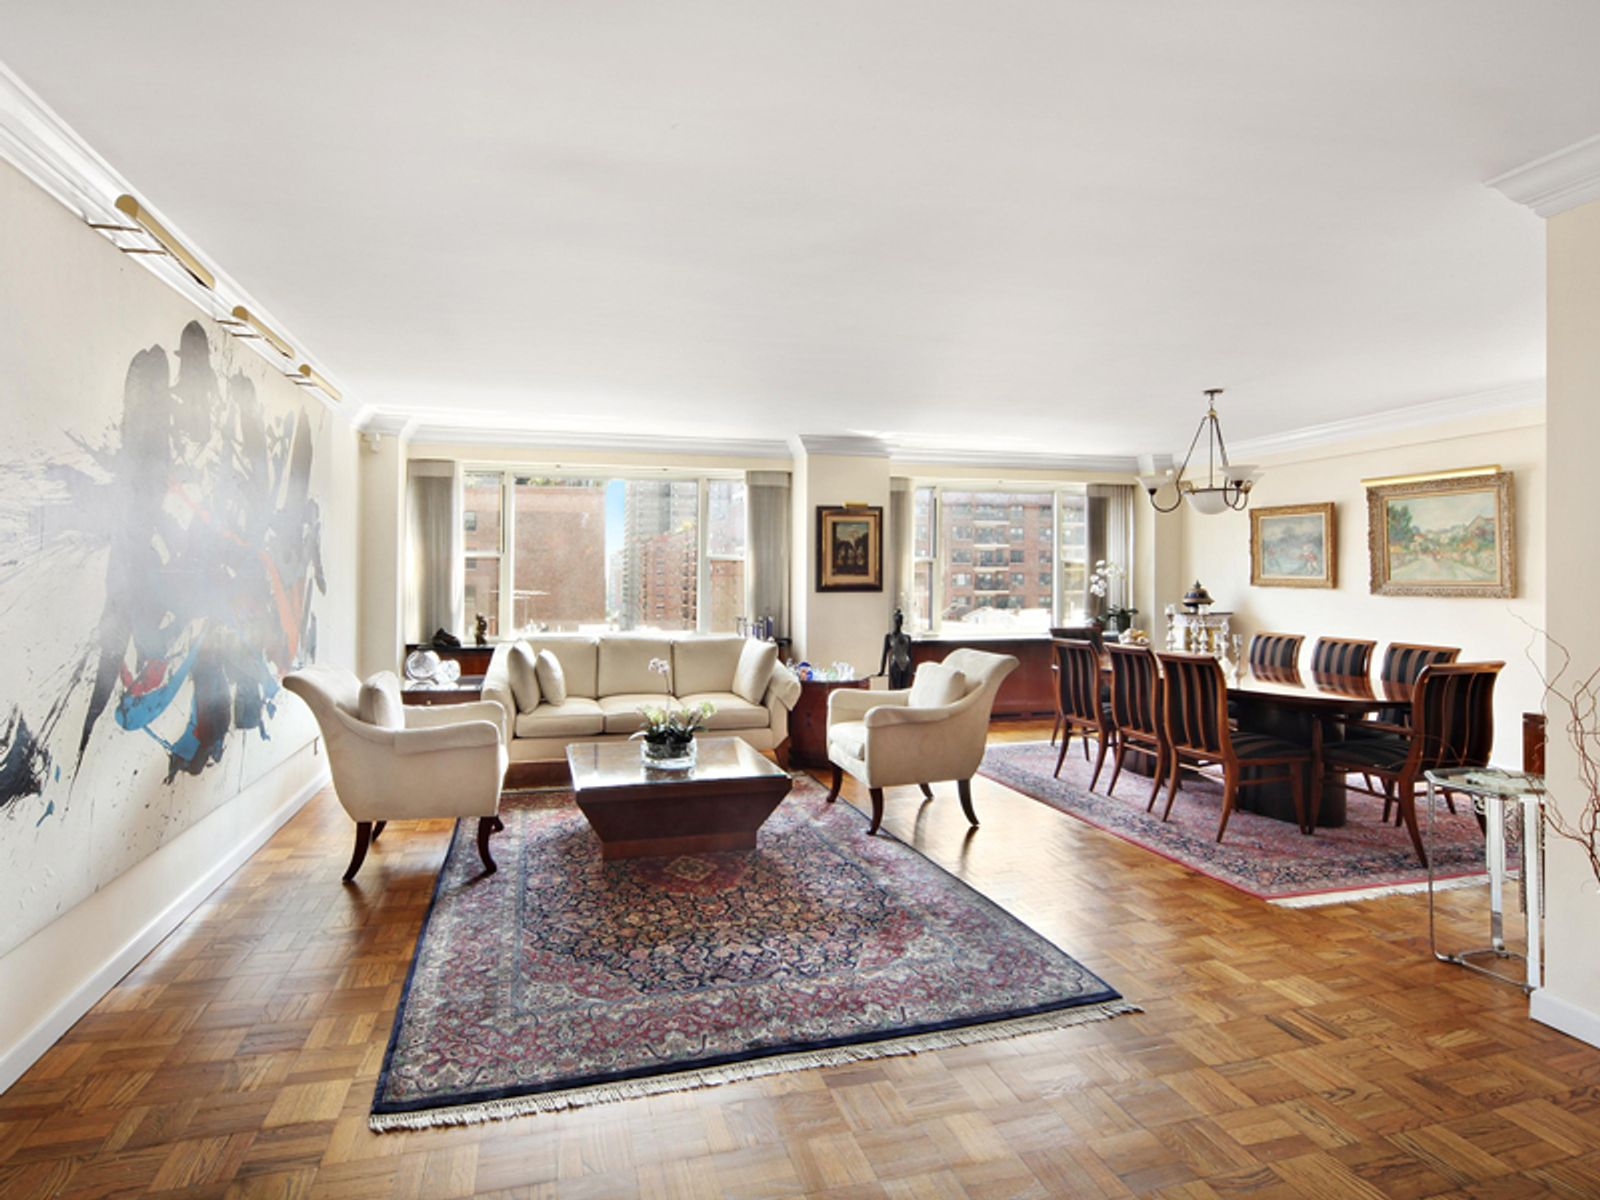 St. Tropez Condominium, New York NY Condominium - New York City Real Estate